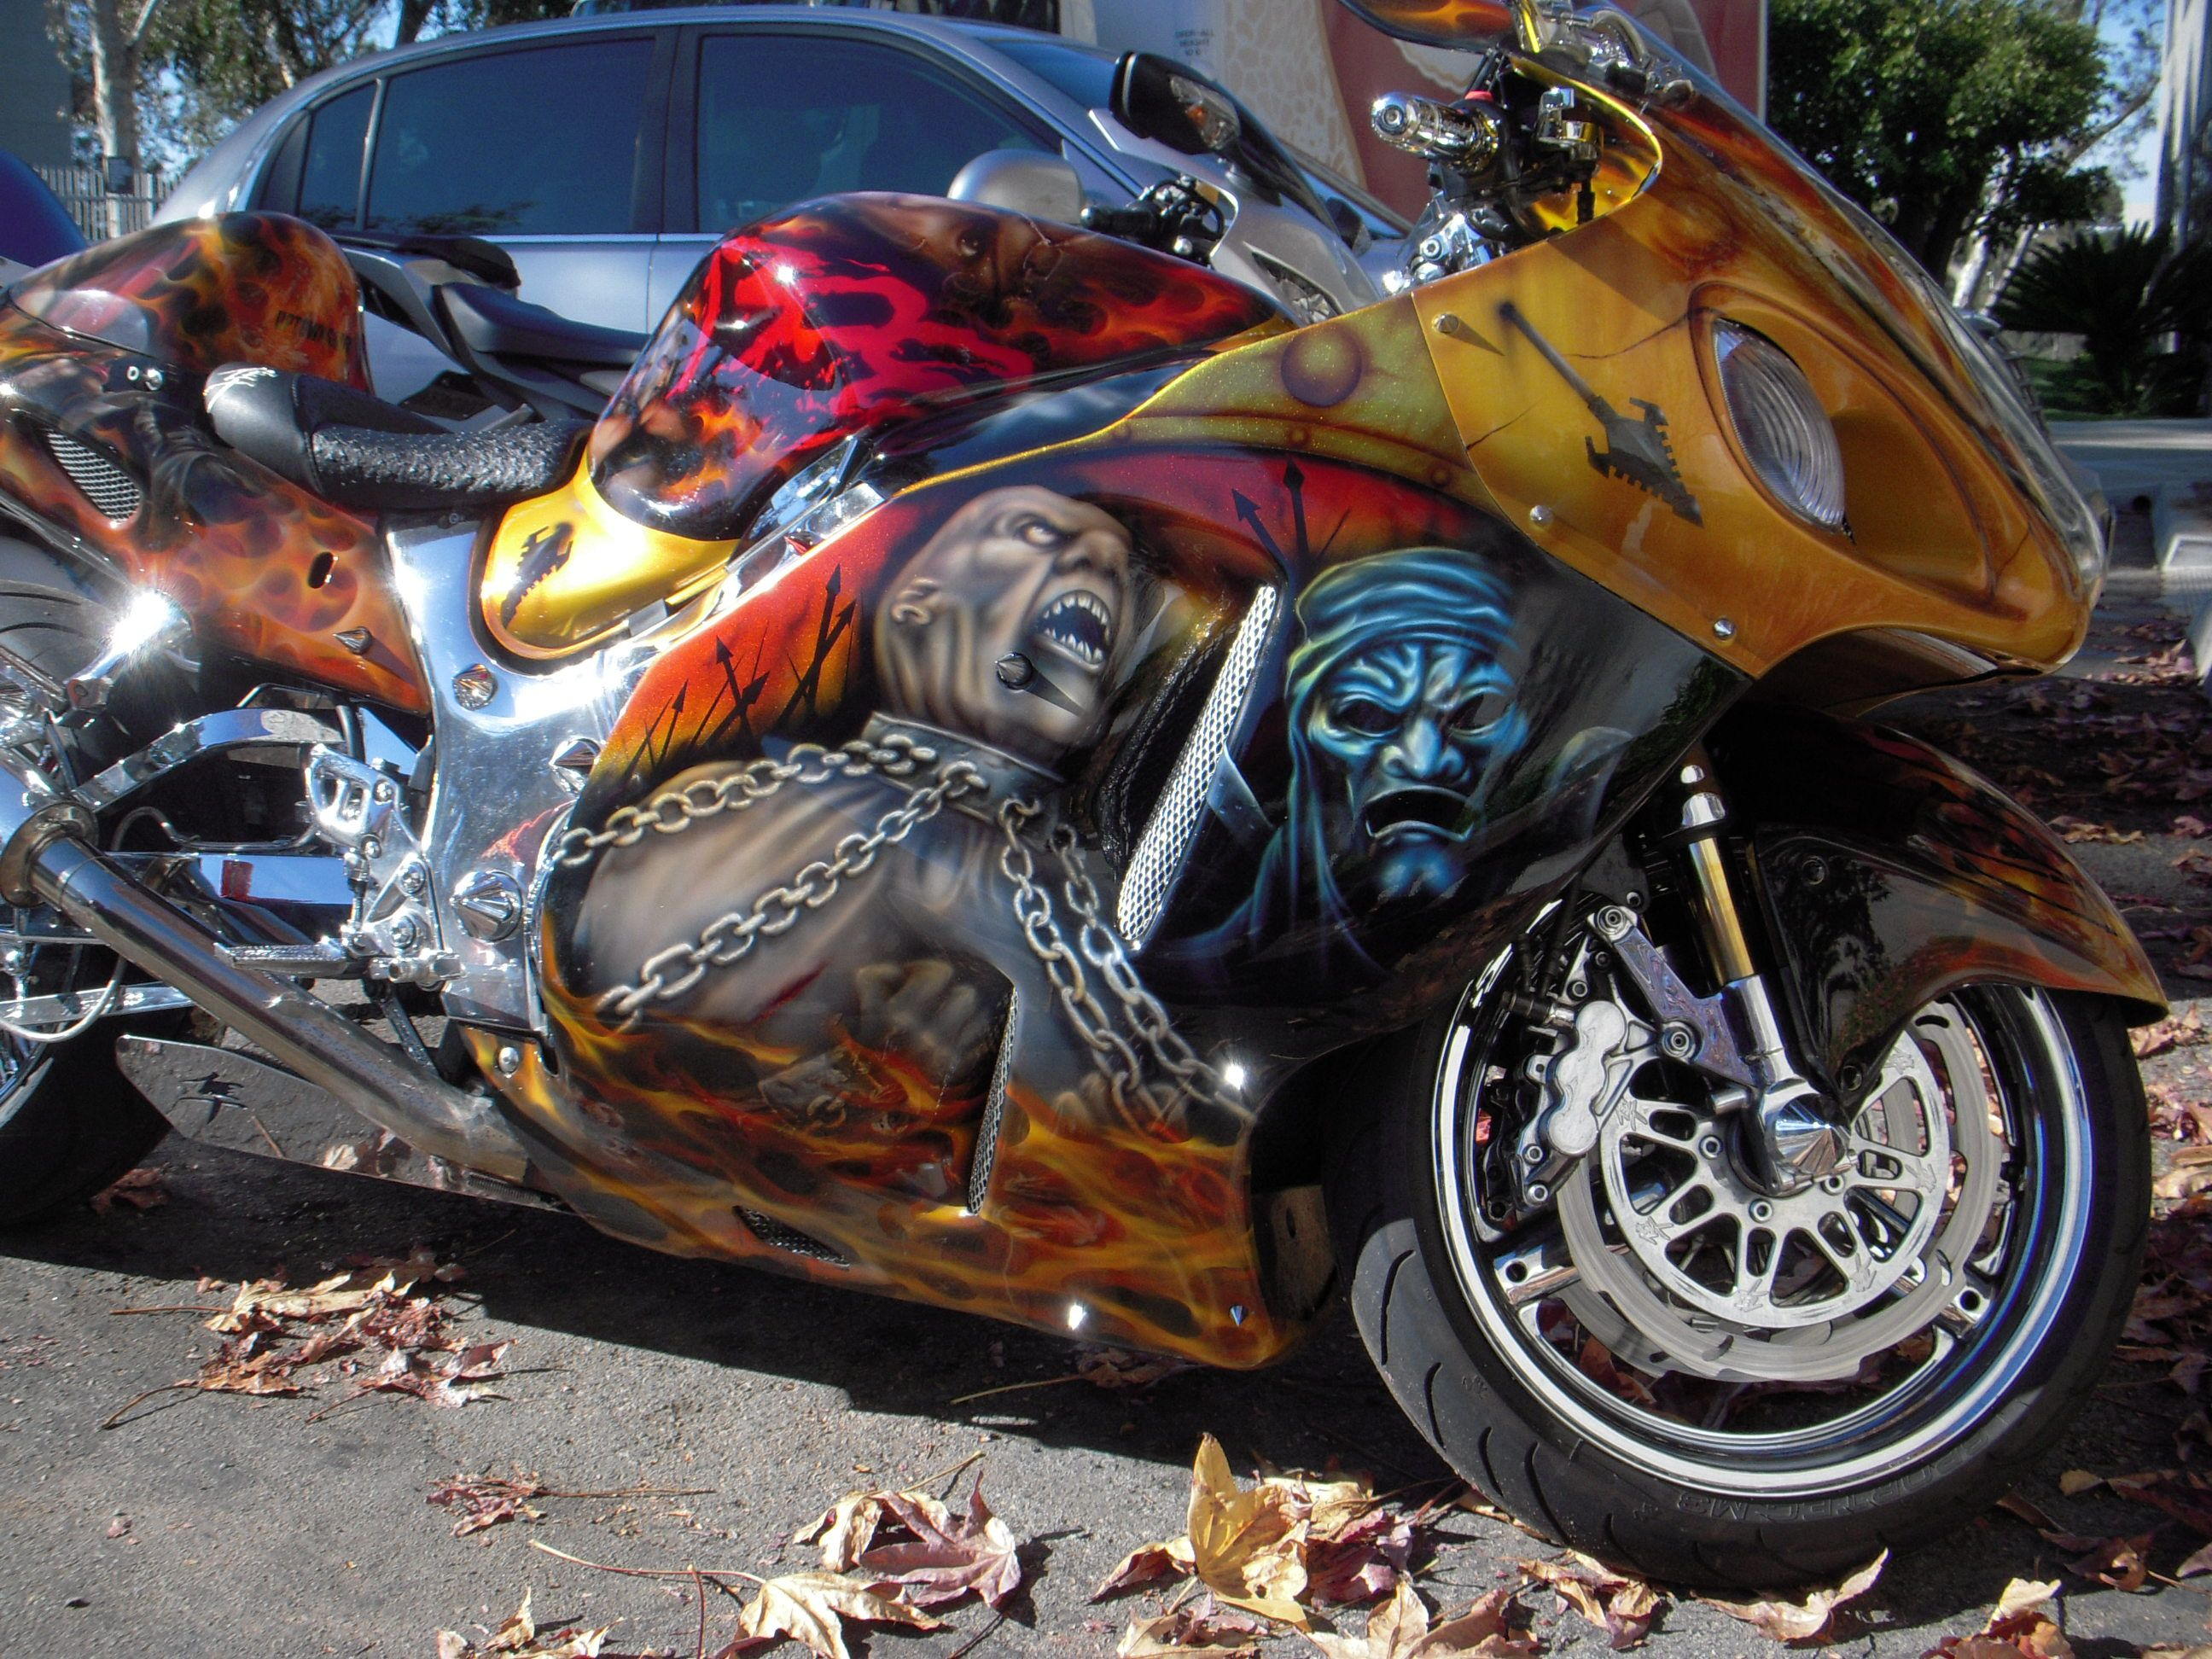 custom paint motorcycle motorcycle the o jays awesome paint jobs on trucks 12 custom paint jobs cars motocycles trucks and bicycles